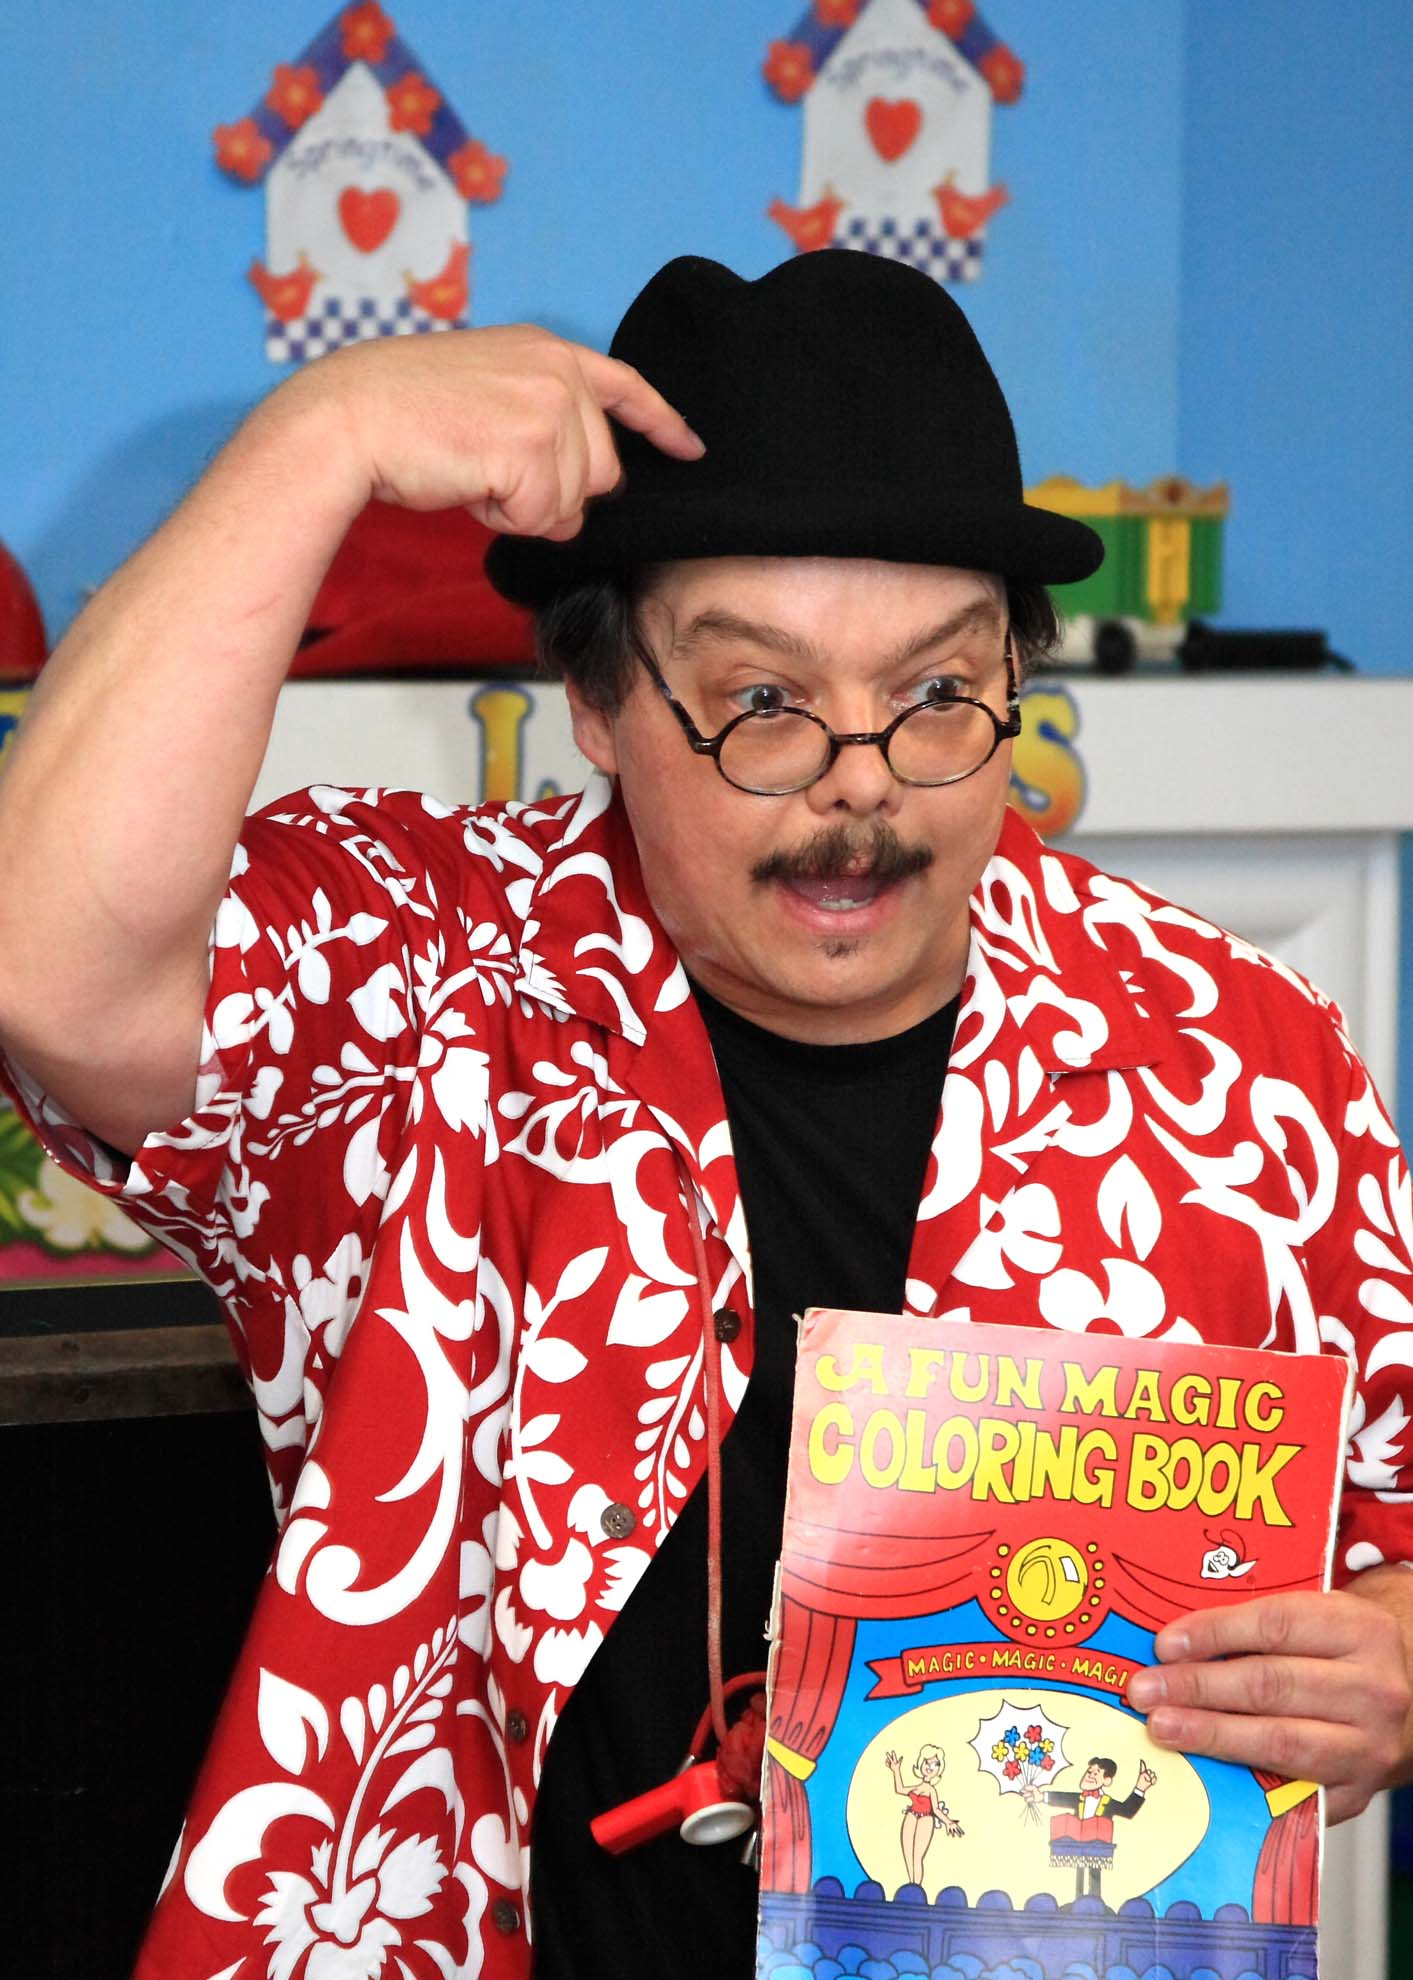 San Antonio Children's Comedian, Cartoonist, Ventriloquist and Magician Present a Fun Magic and Puppet Show for Kids at a San Antonio Day Care.